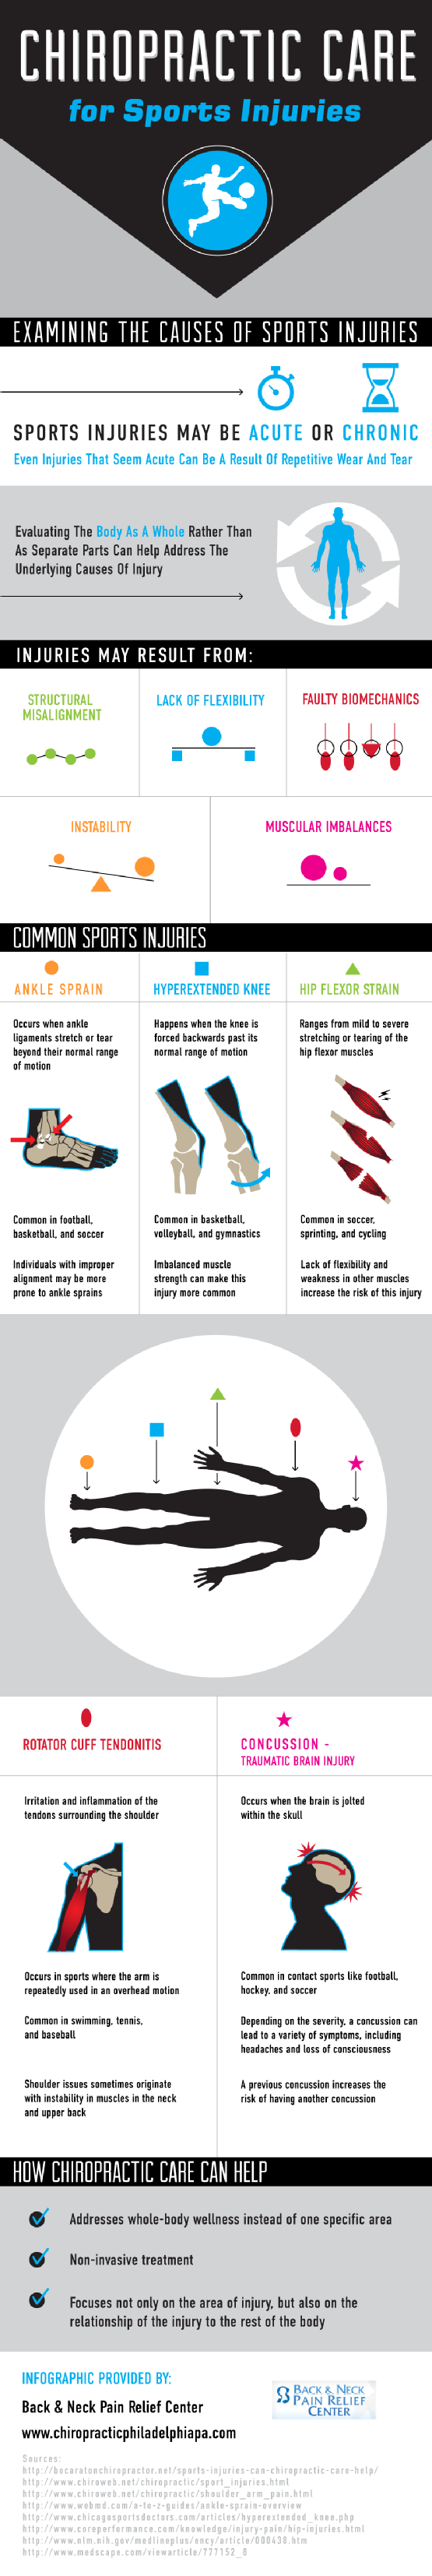 chiropractor sports care. infographic Chiropractic